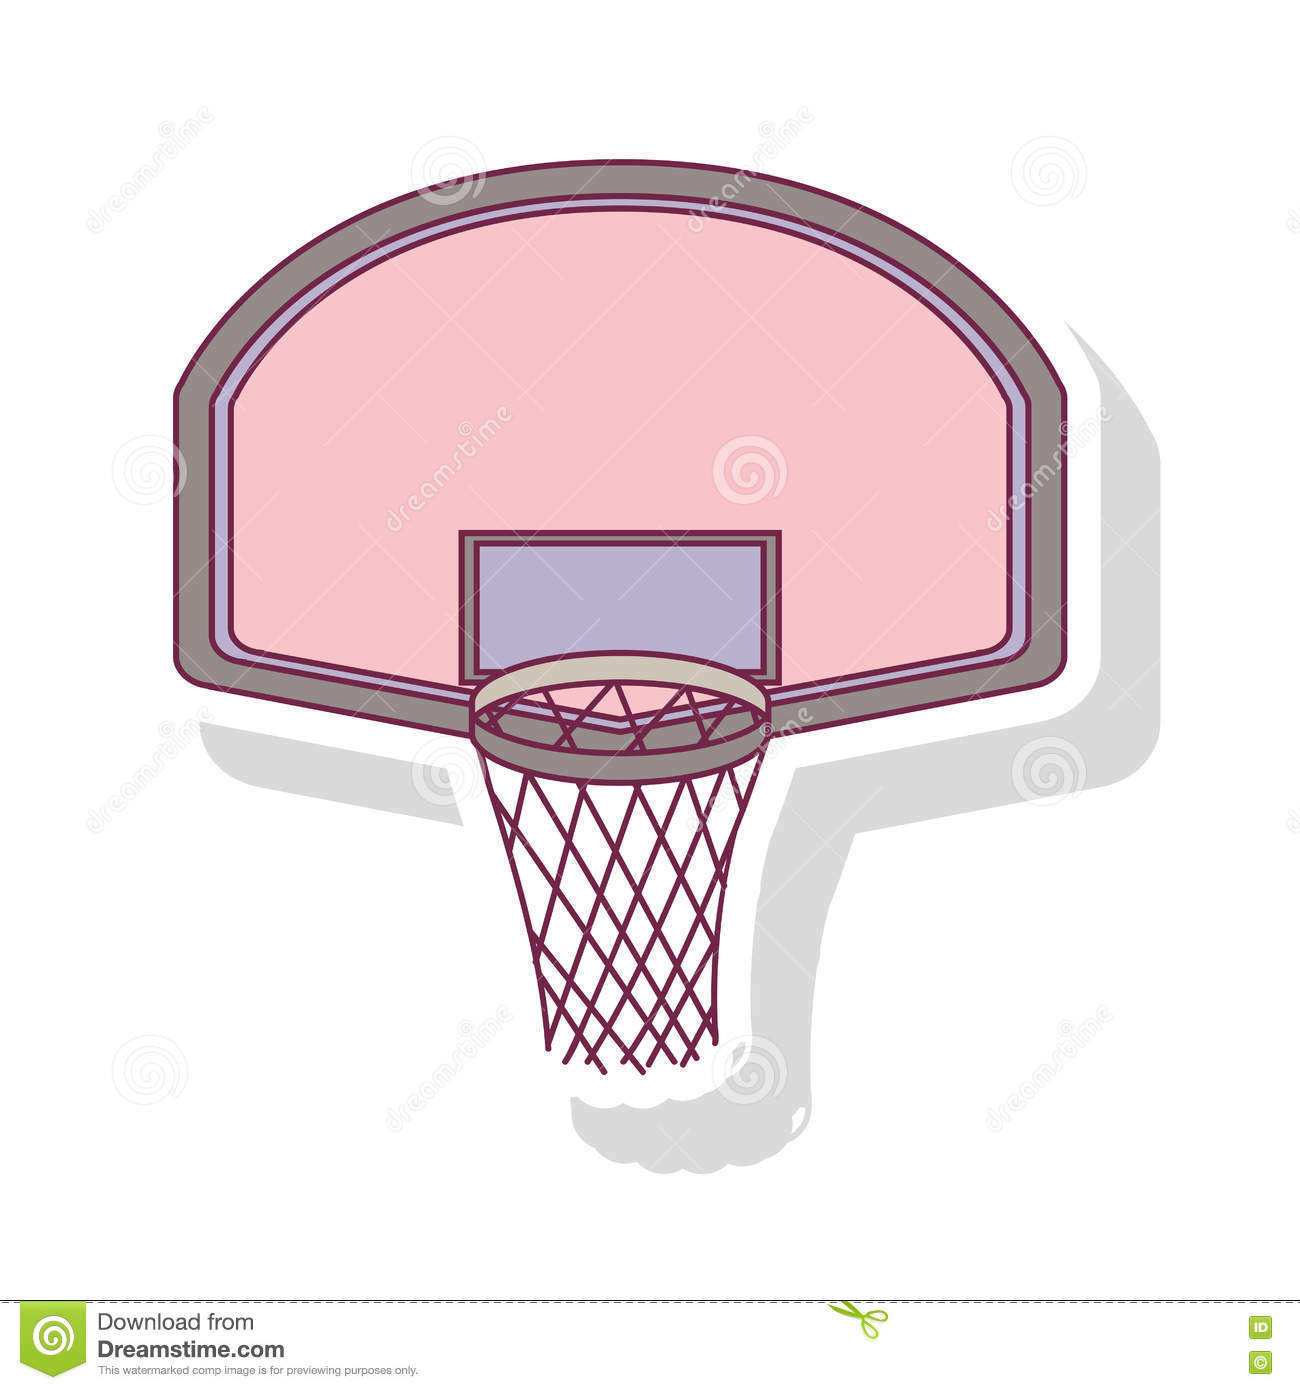 silhouette pastel color of rounded basketball hoop with shadow